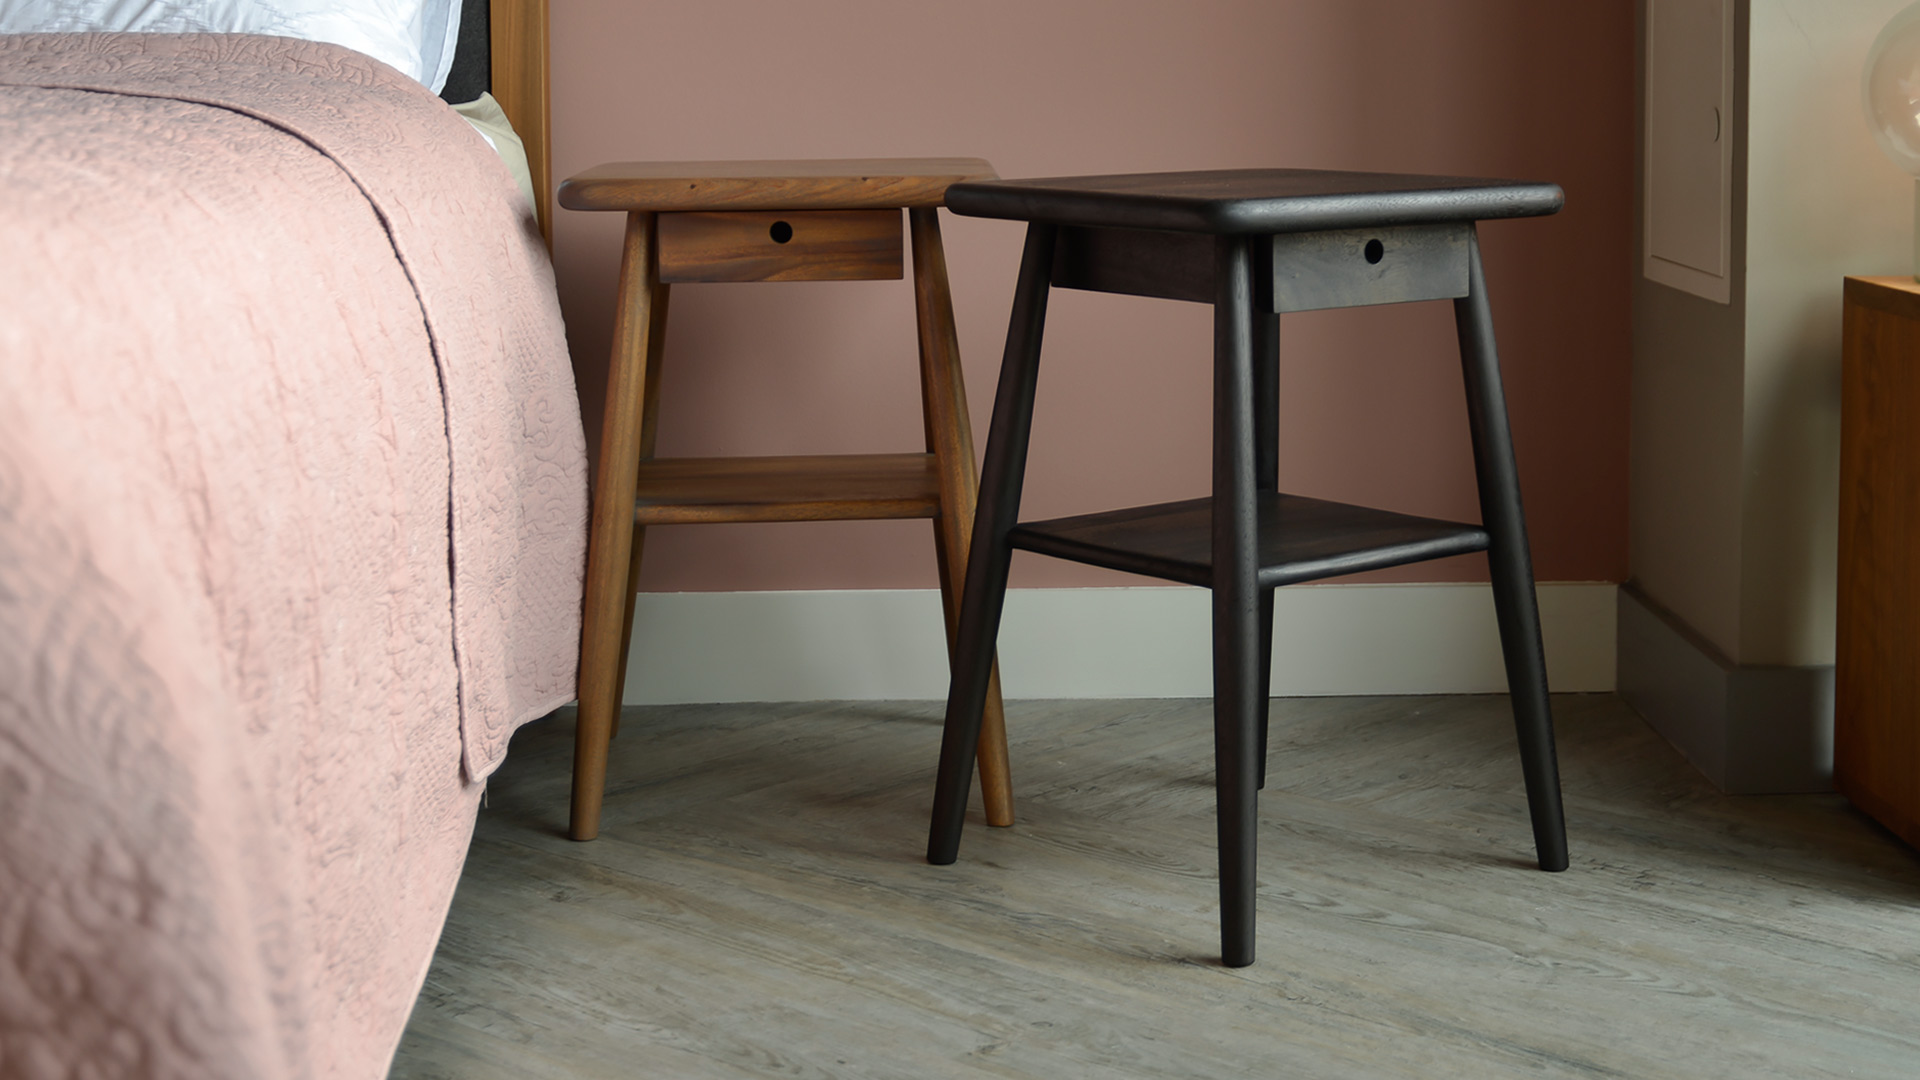 Shaker style bedside tables are always a winner.